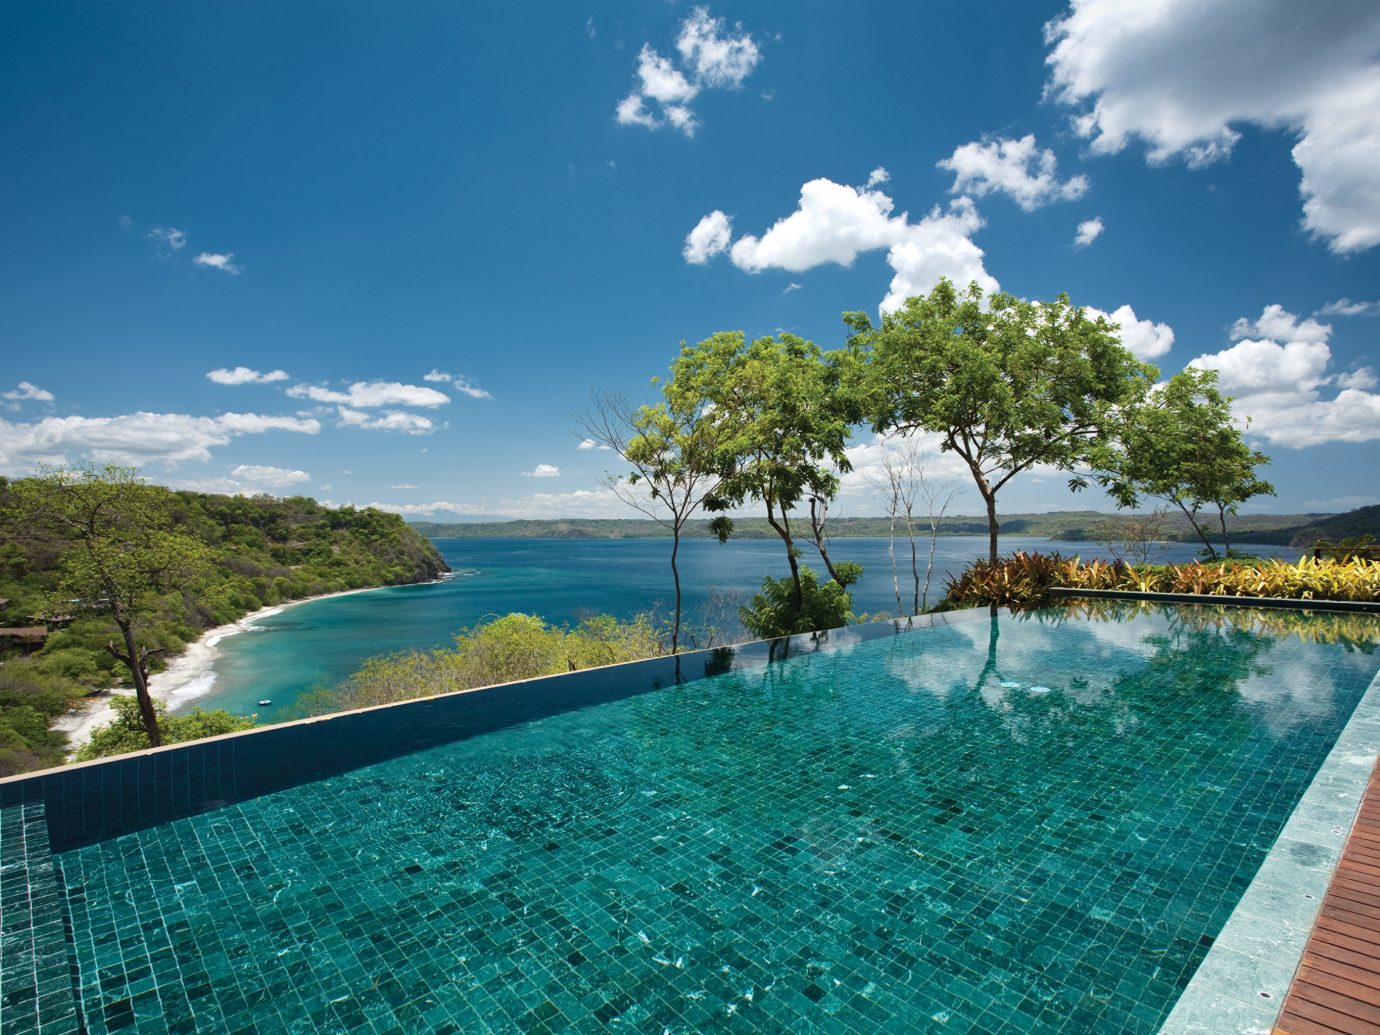 Pool at the Four Seasons Costa Rica